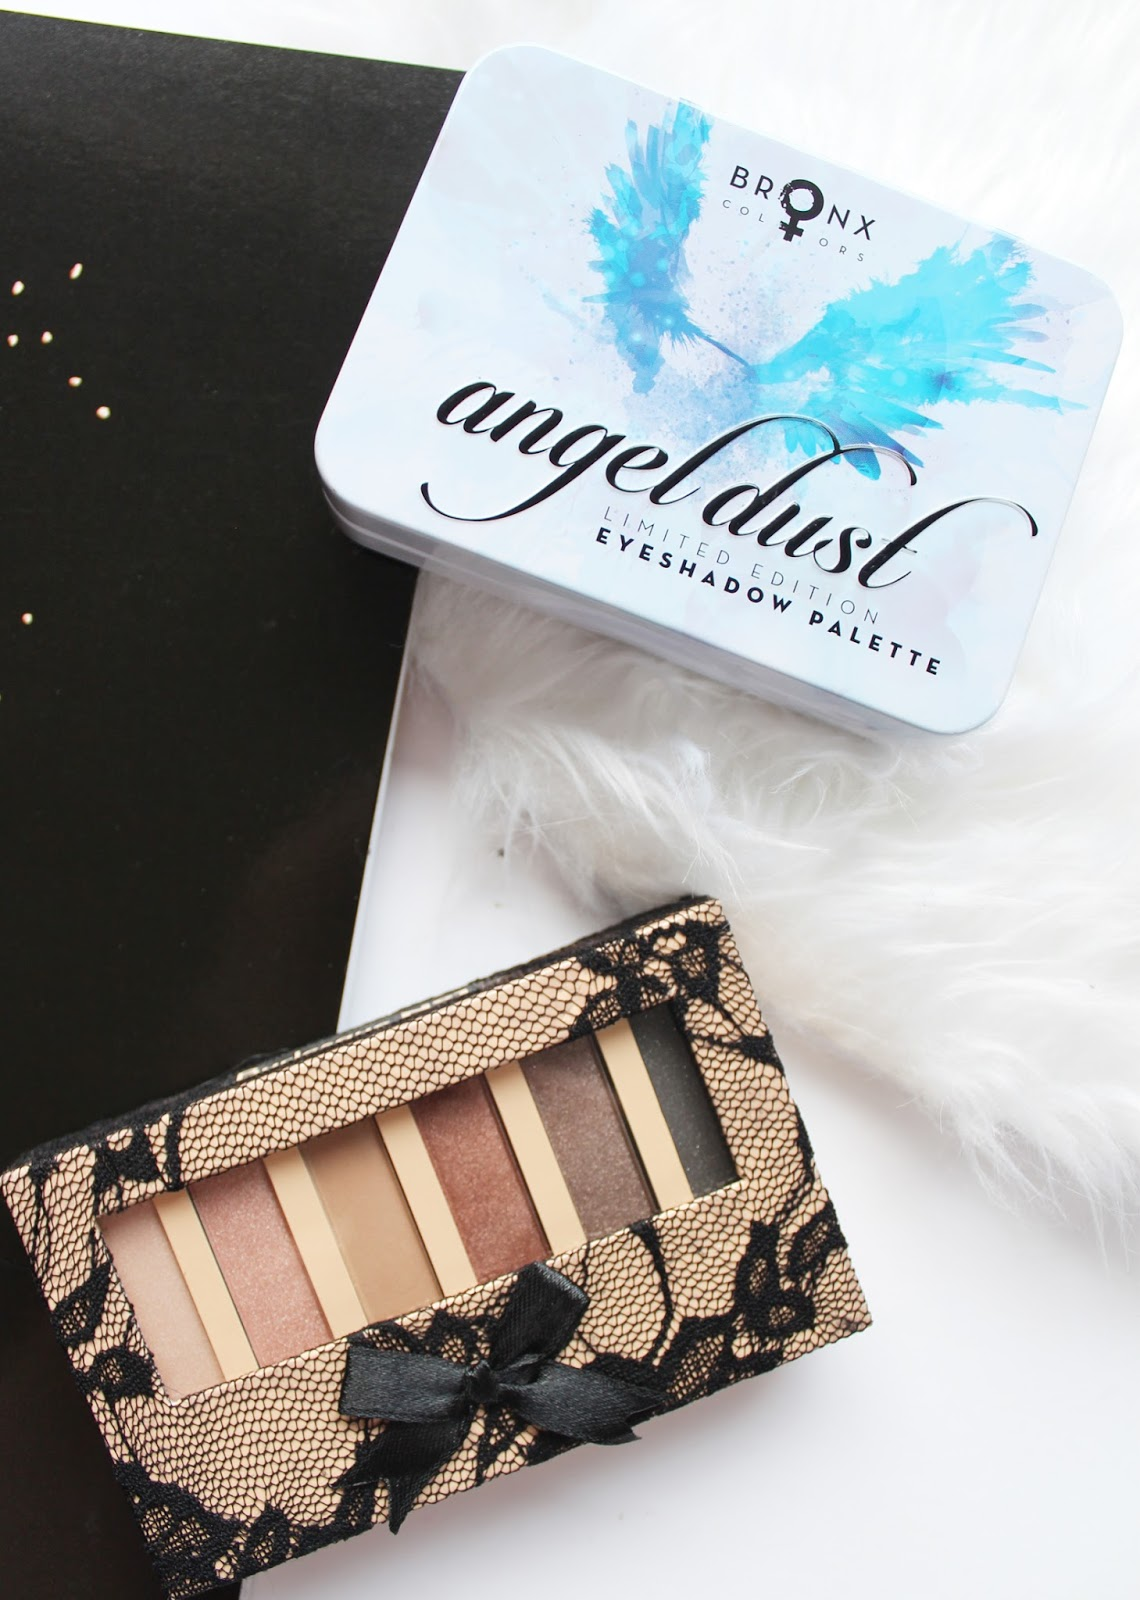 BRONX COLORS | Burlesque + Angel Dust Eyeshadow Palettes - Review + Swatches - CassandraMyeea